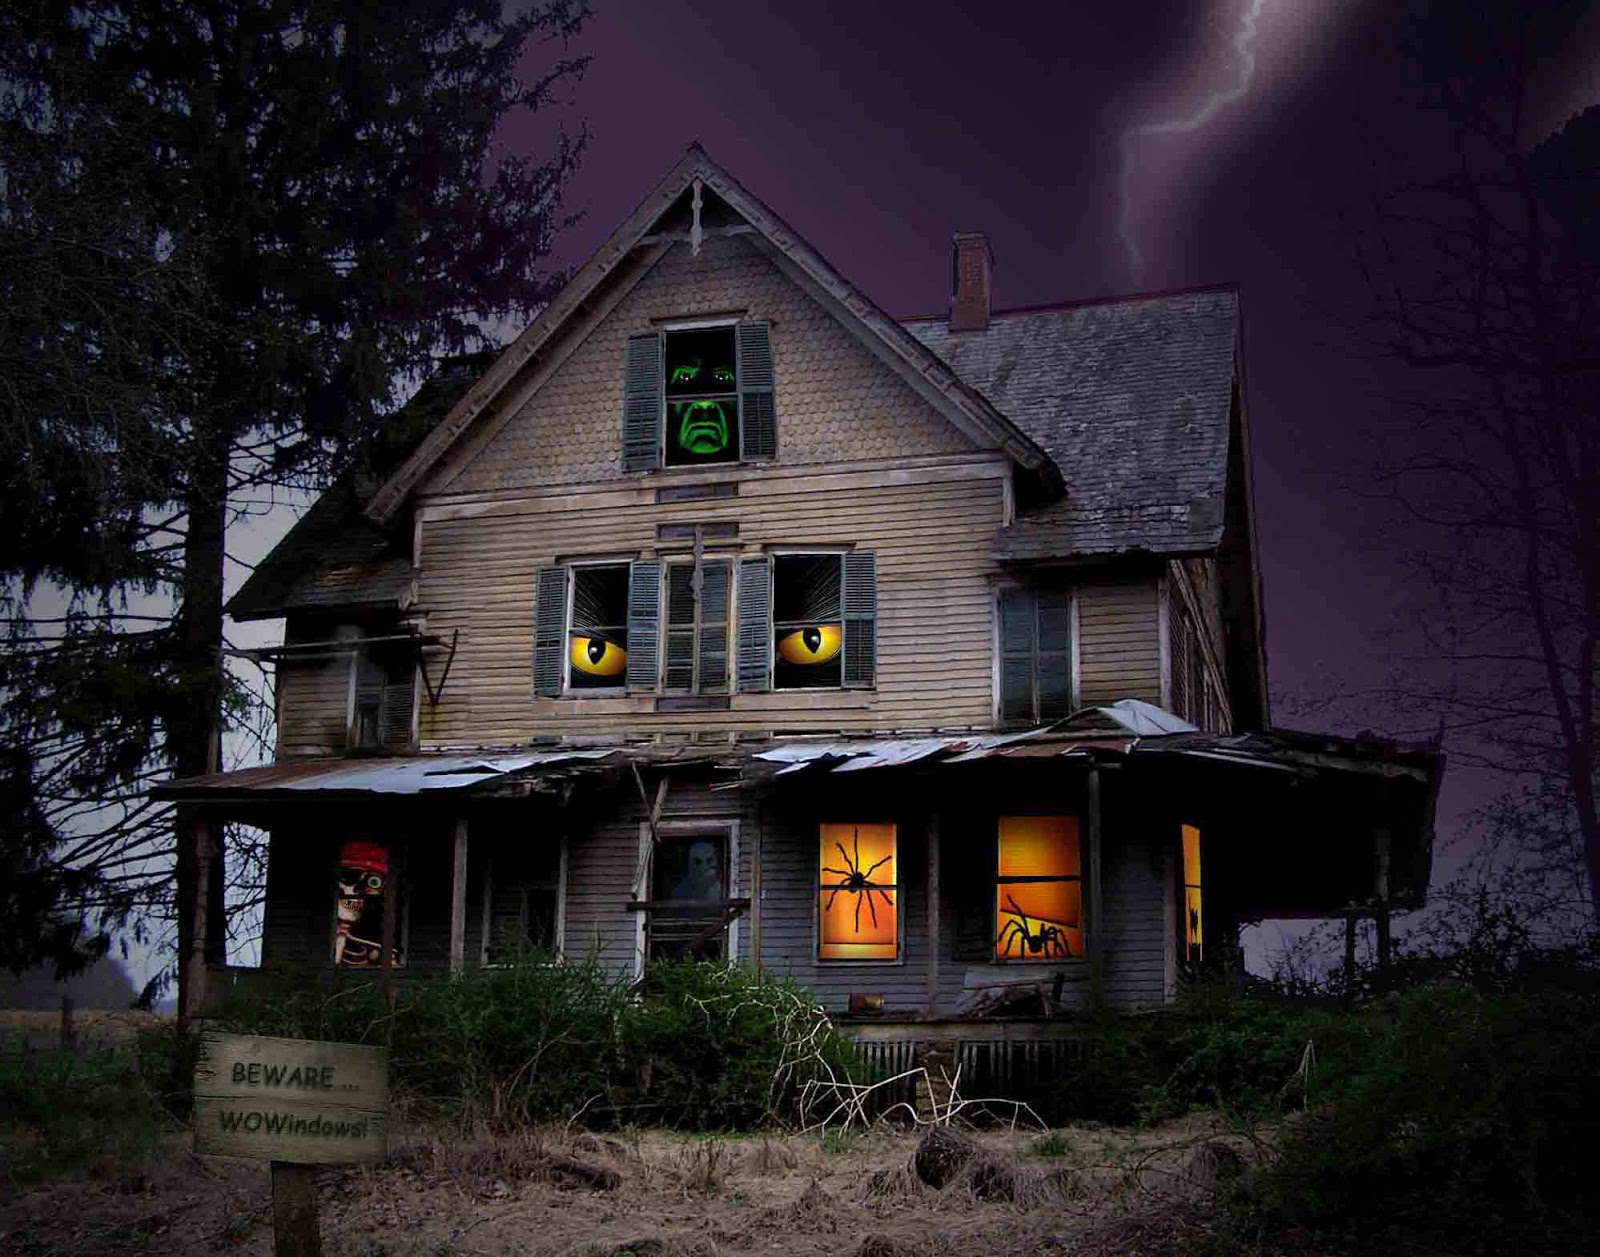 Haunted house hd wallpapers hd wallpapers pics for House photos hd